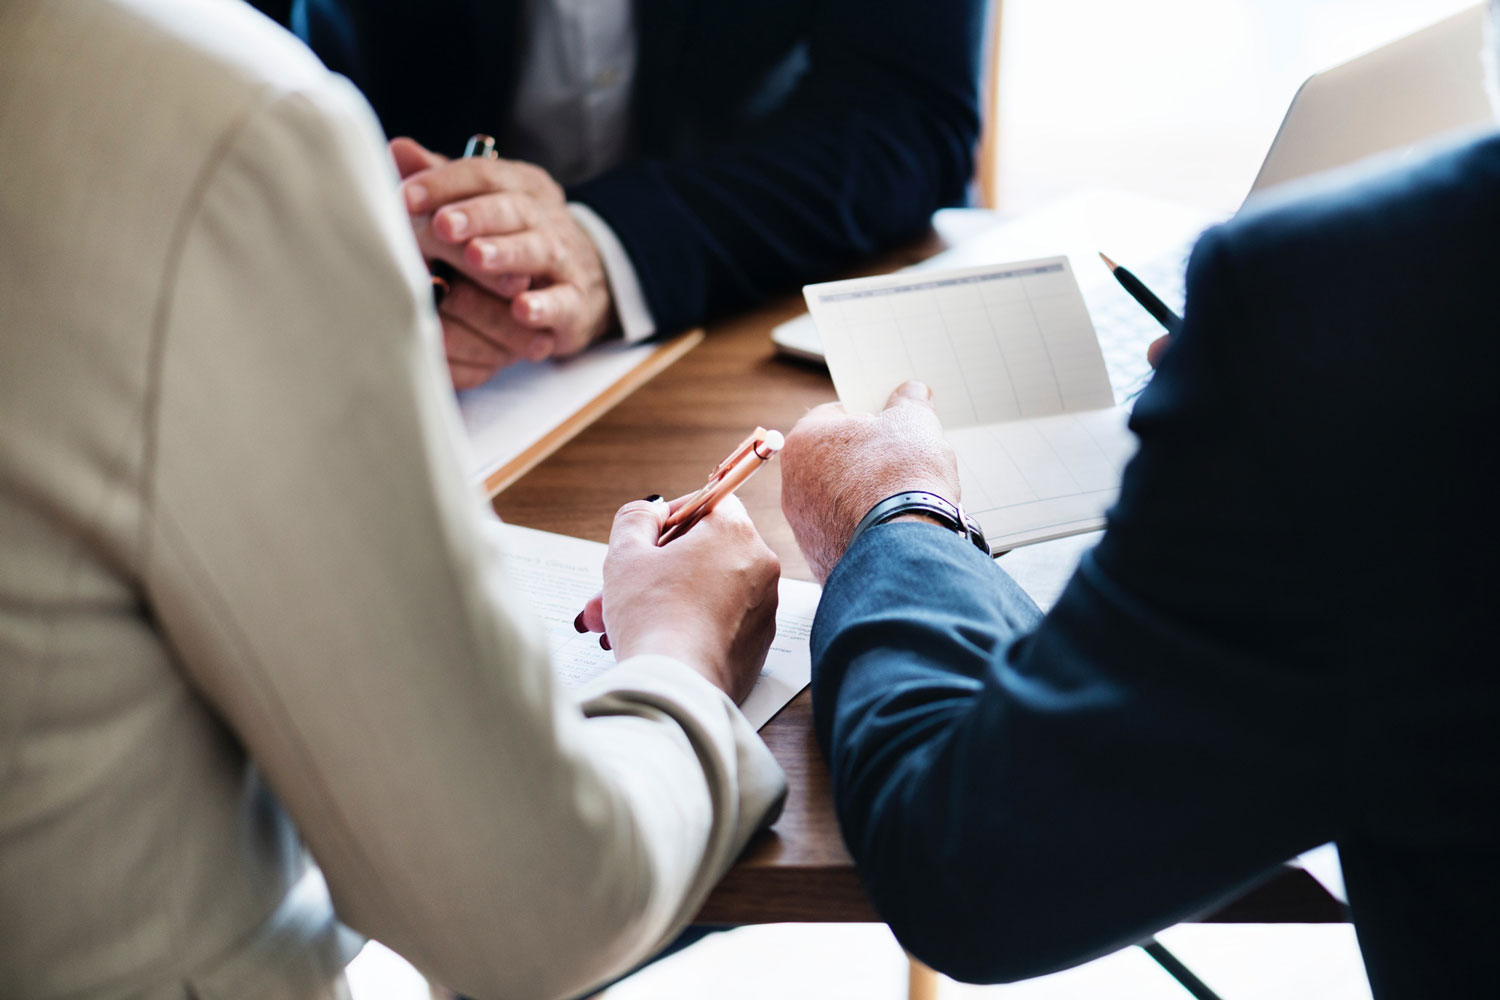 stock photo of people meeting at table